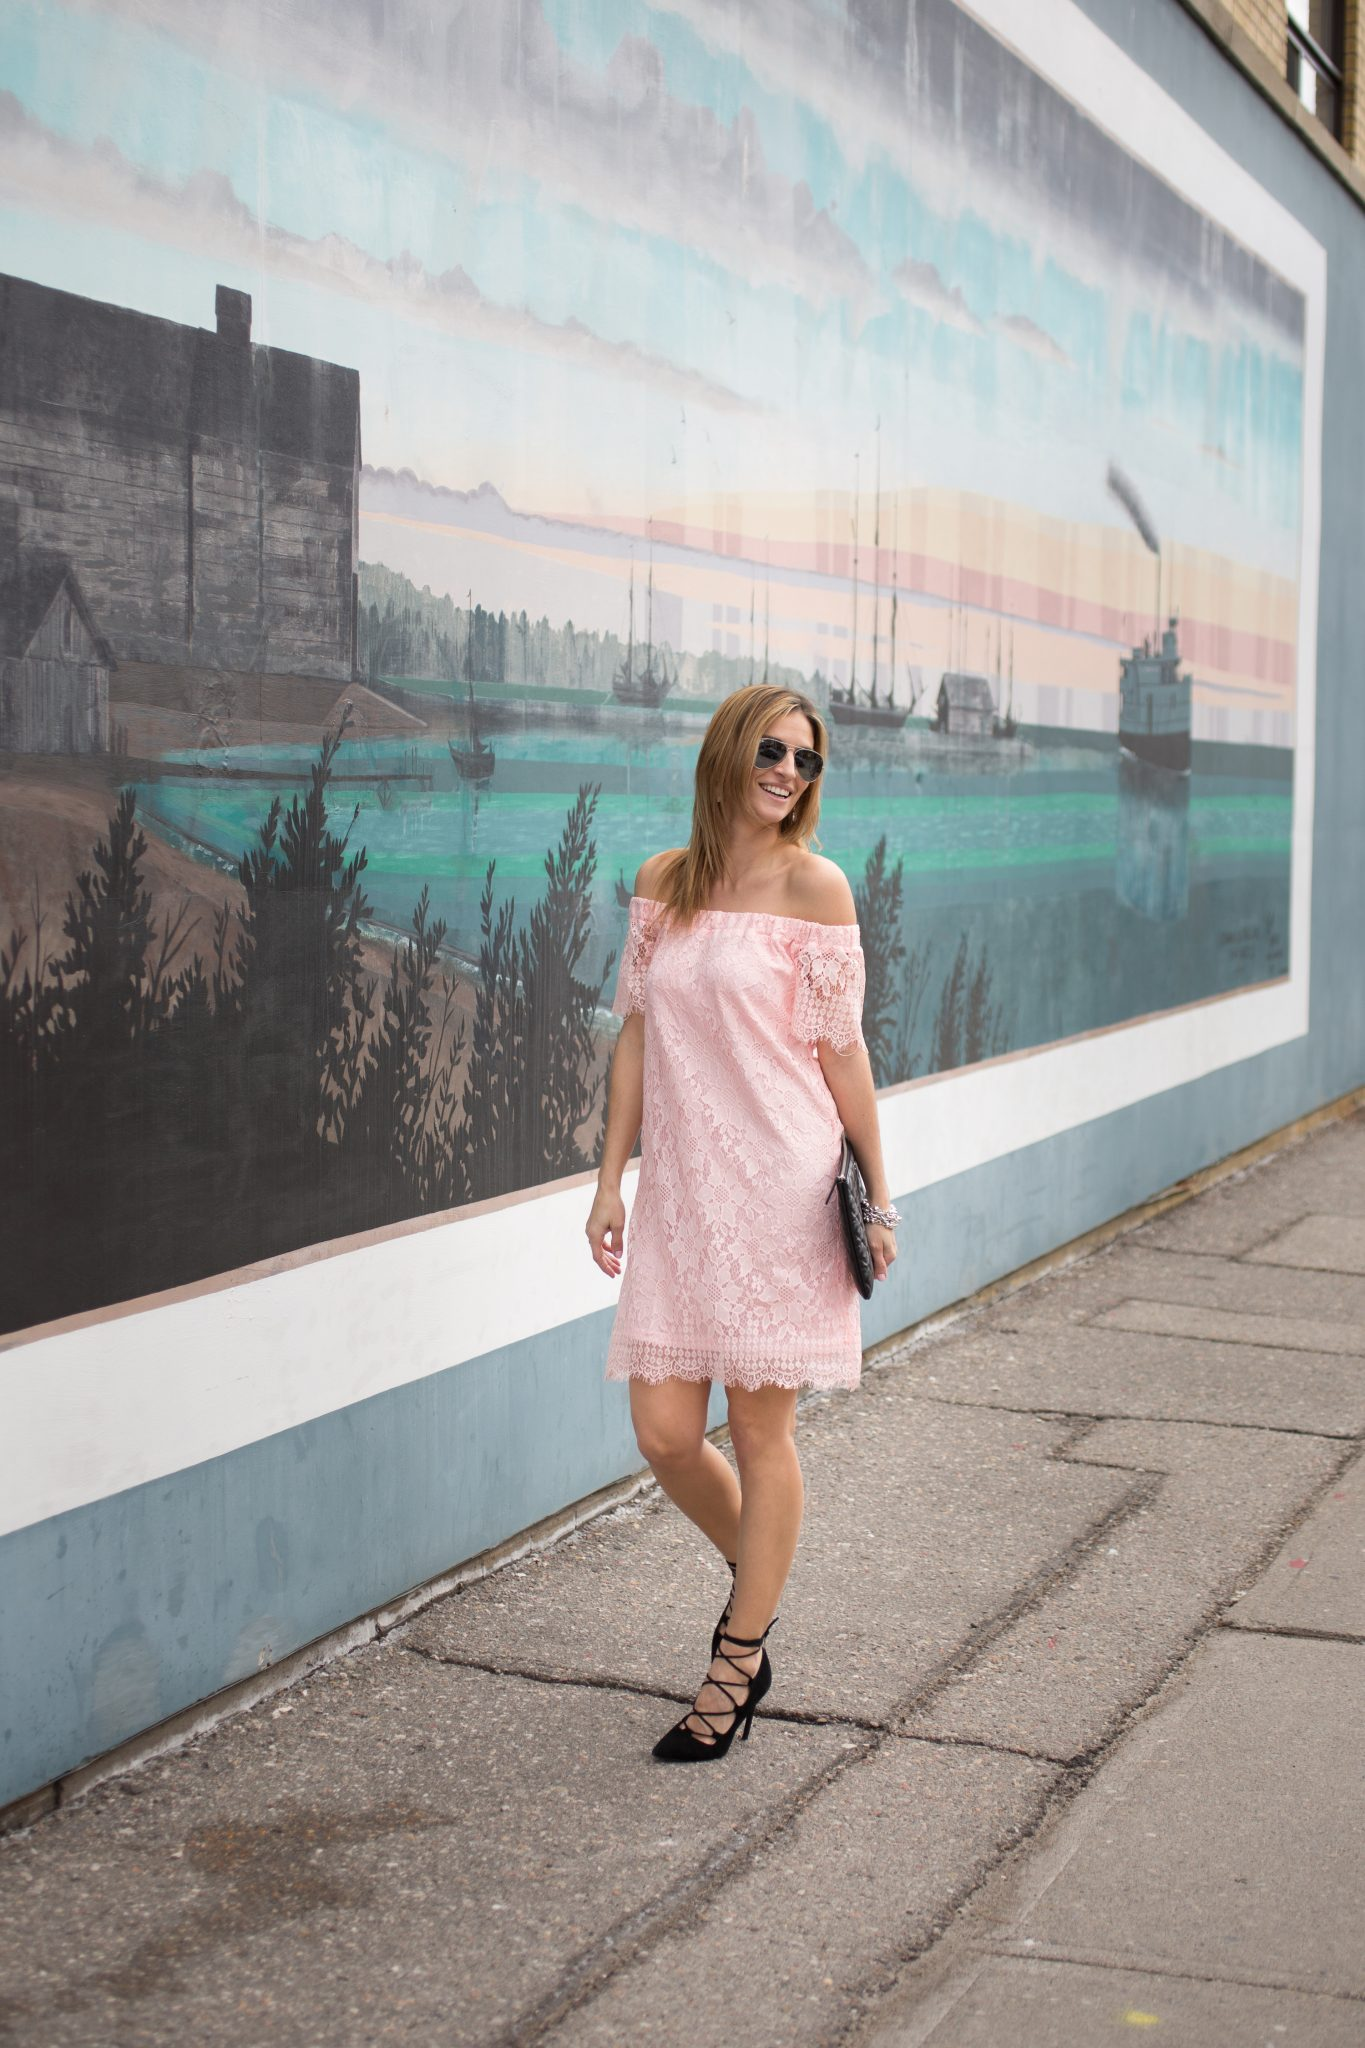 sparkleshinylove Pink lace off the shoulder dress from Suzy Shier, Chanel black quilted clutch, black suede lace up pumps, Ray-Ban Aviators